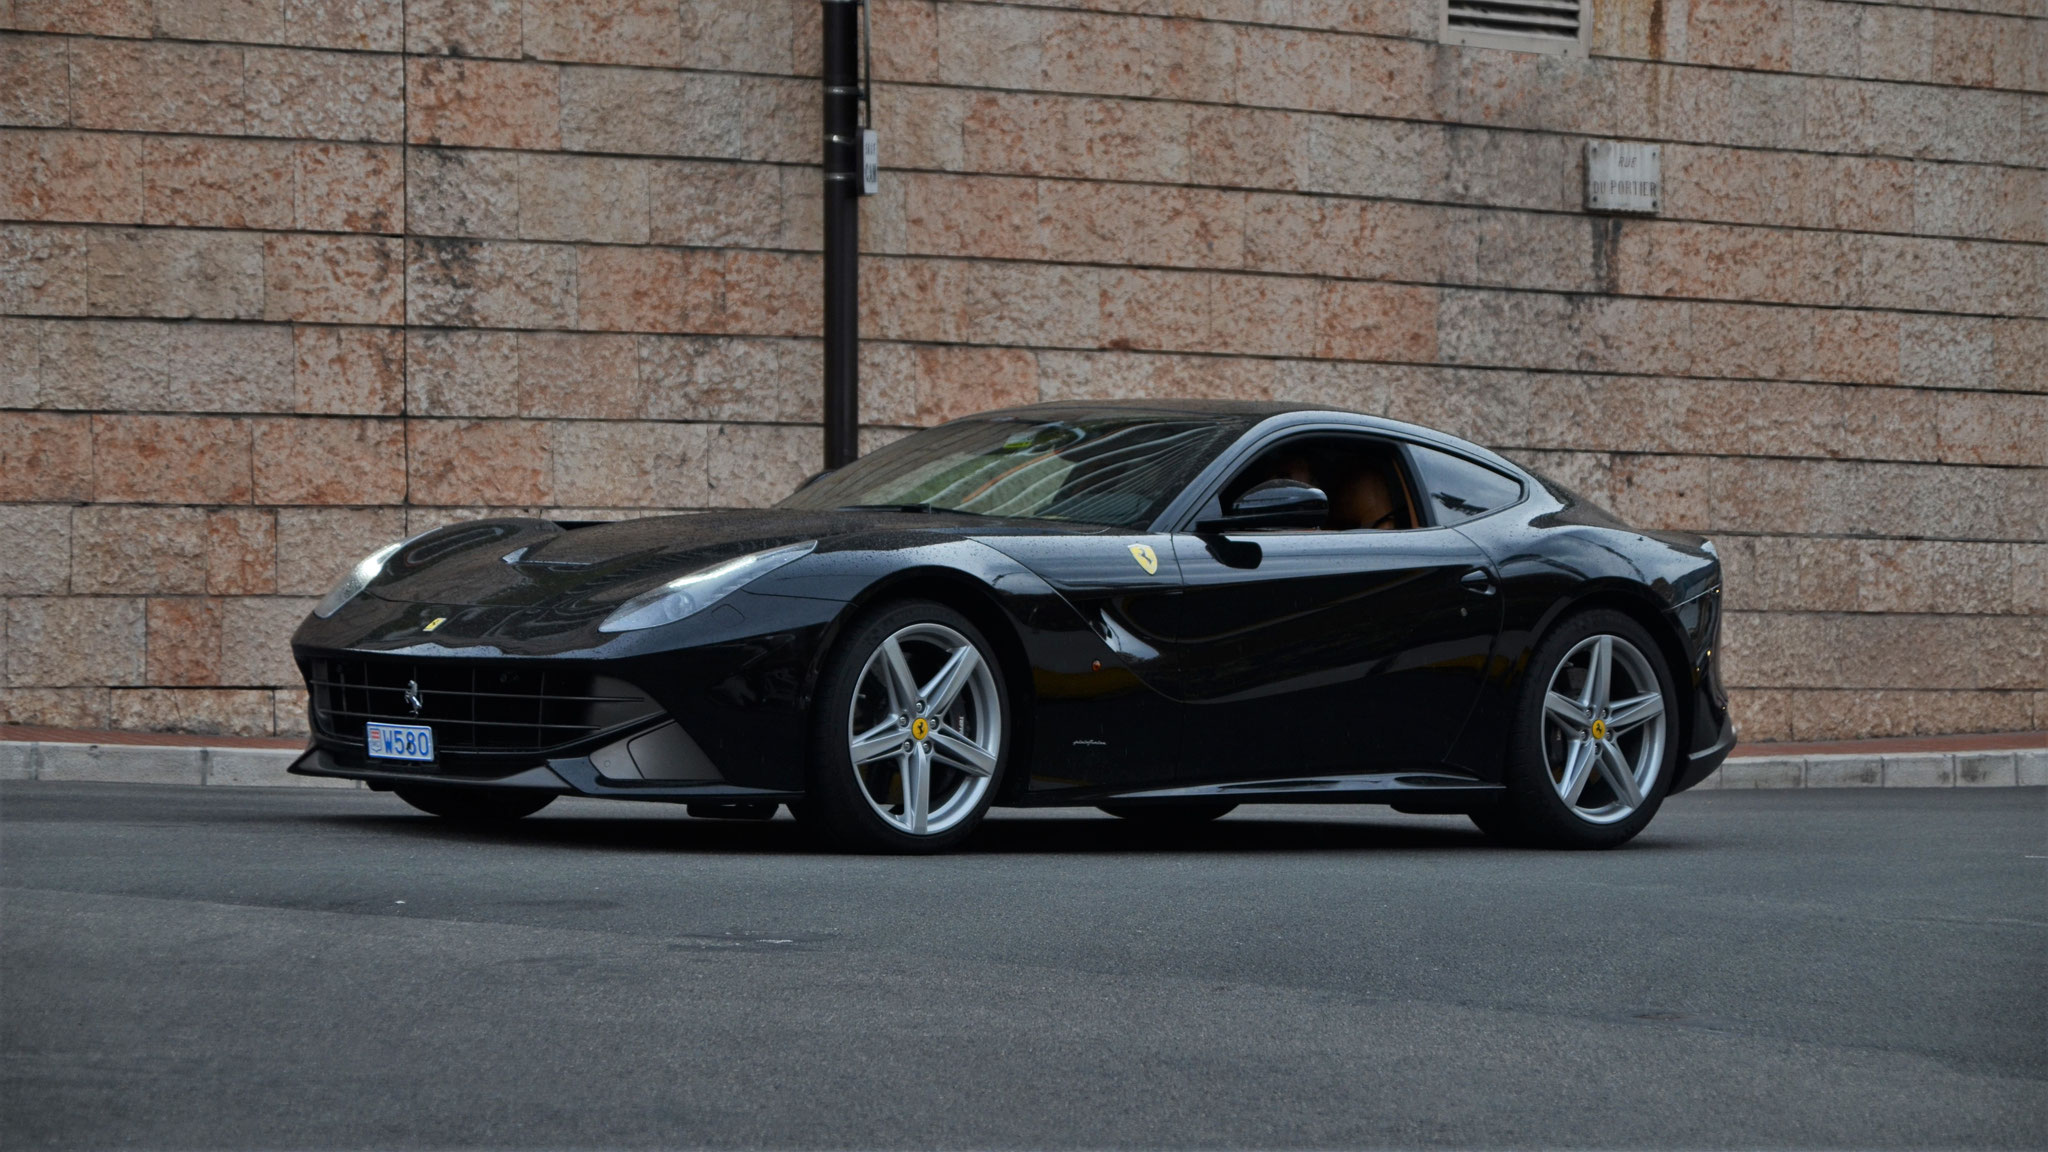 Ferrari F12 Berlinetta - W580 (MC)